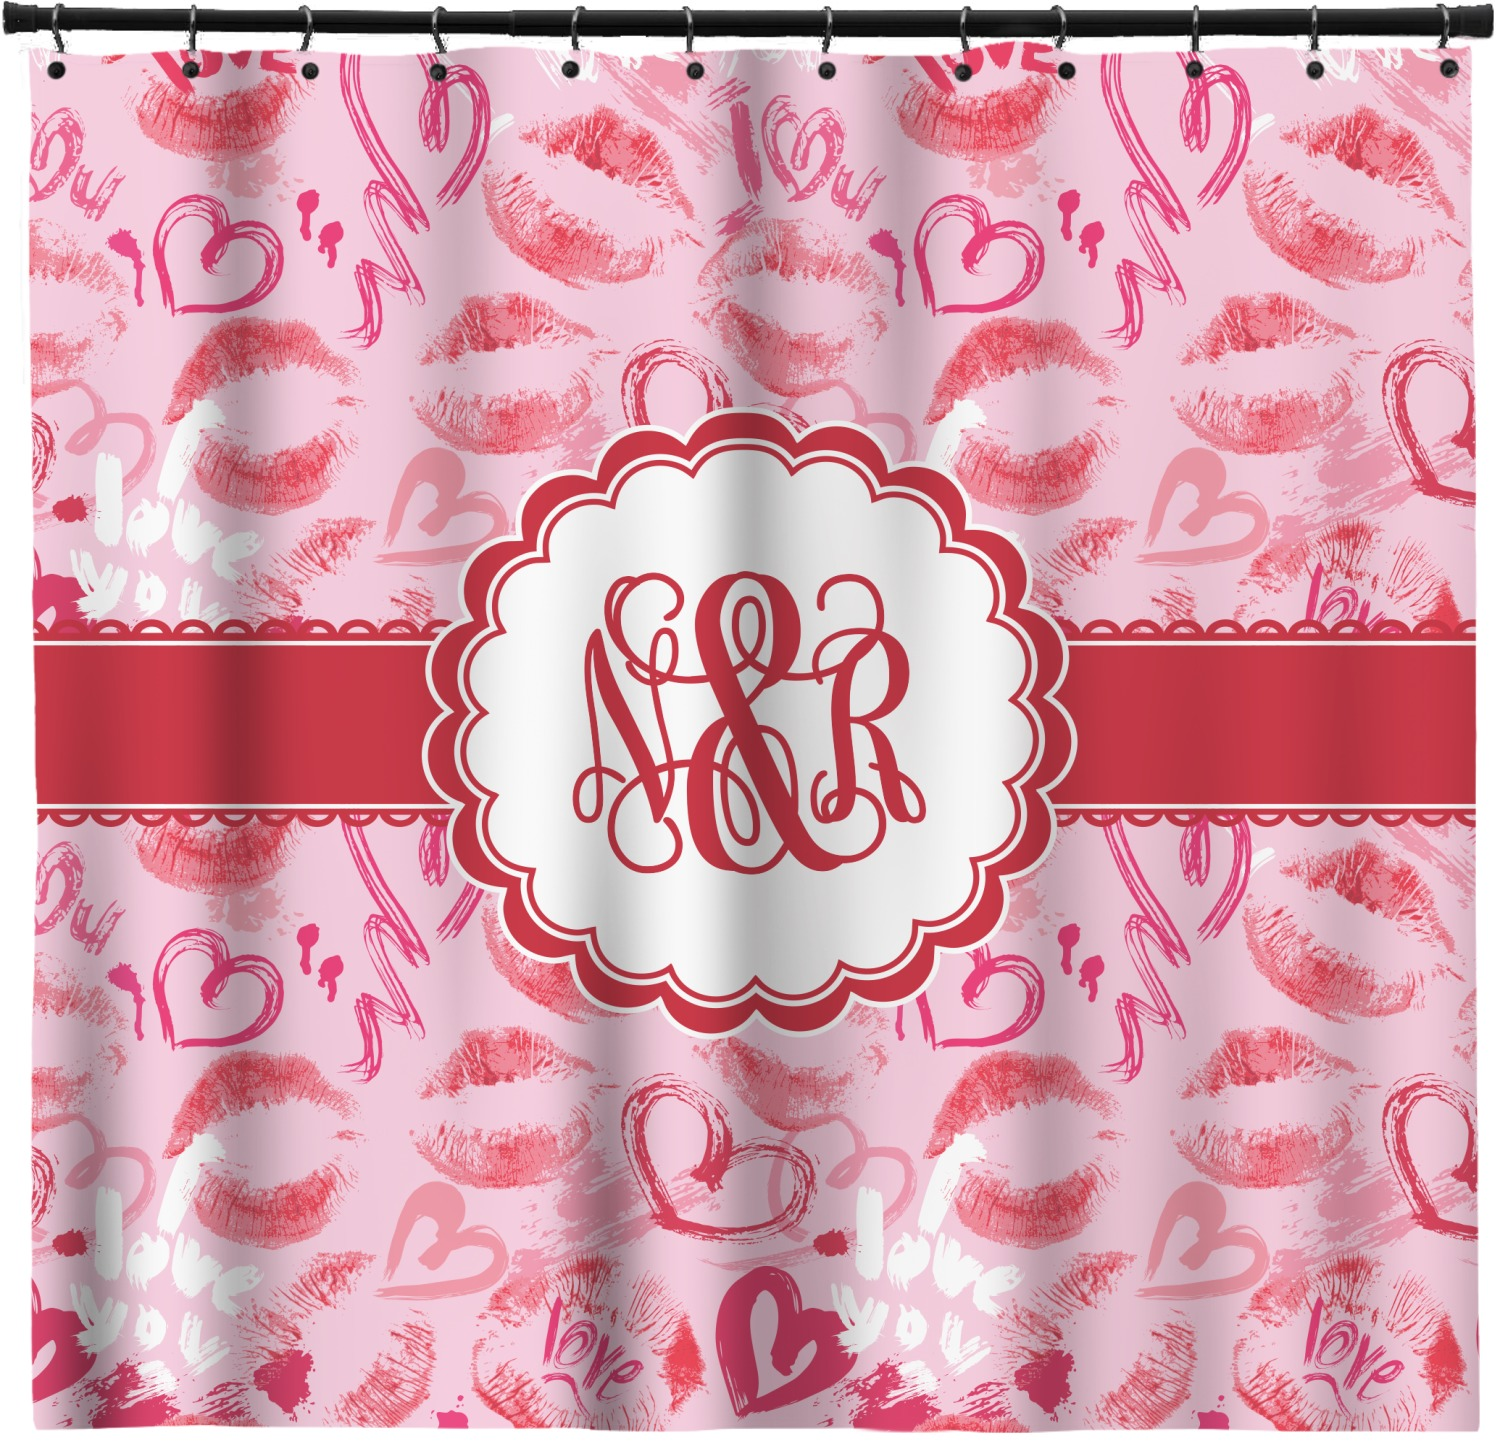 Lips N Hearts Shower Curtain Personalized